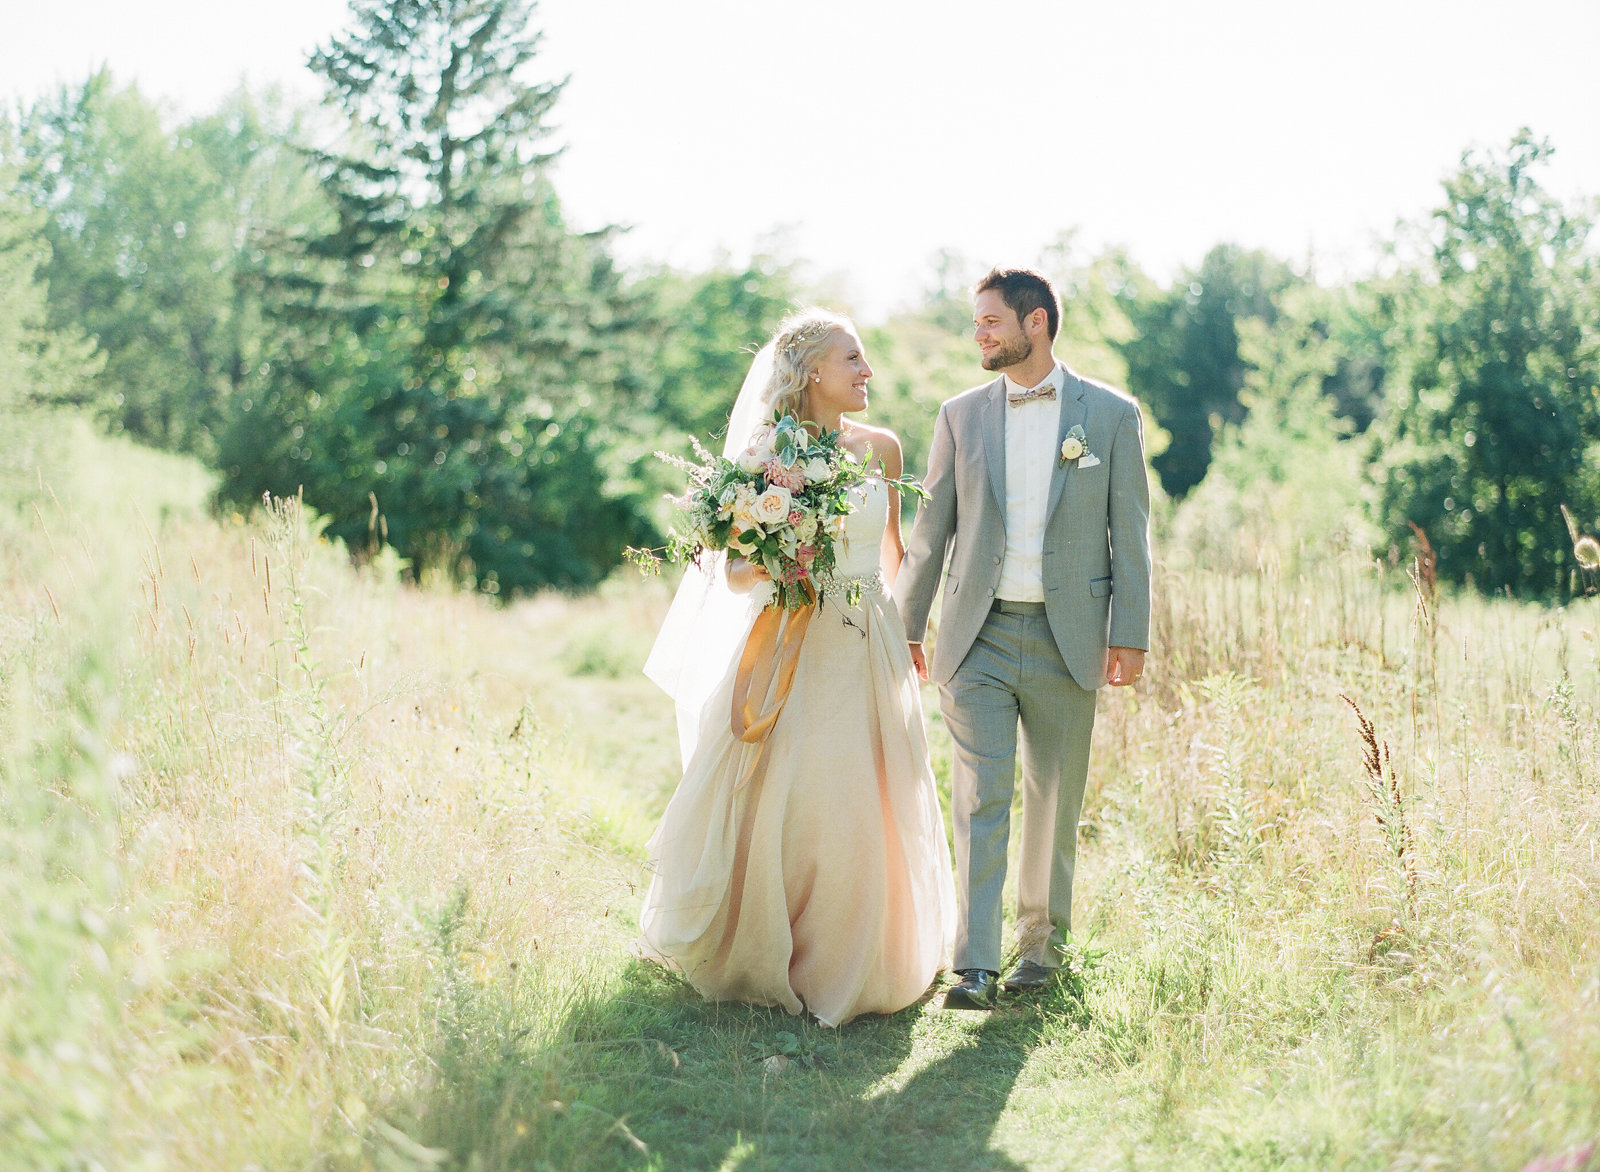 Rebecca & Steve | Molly Taylor and Co.